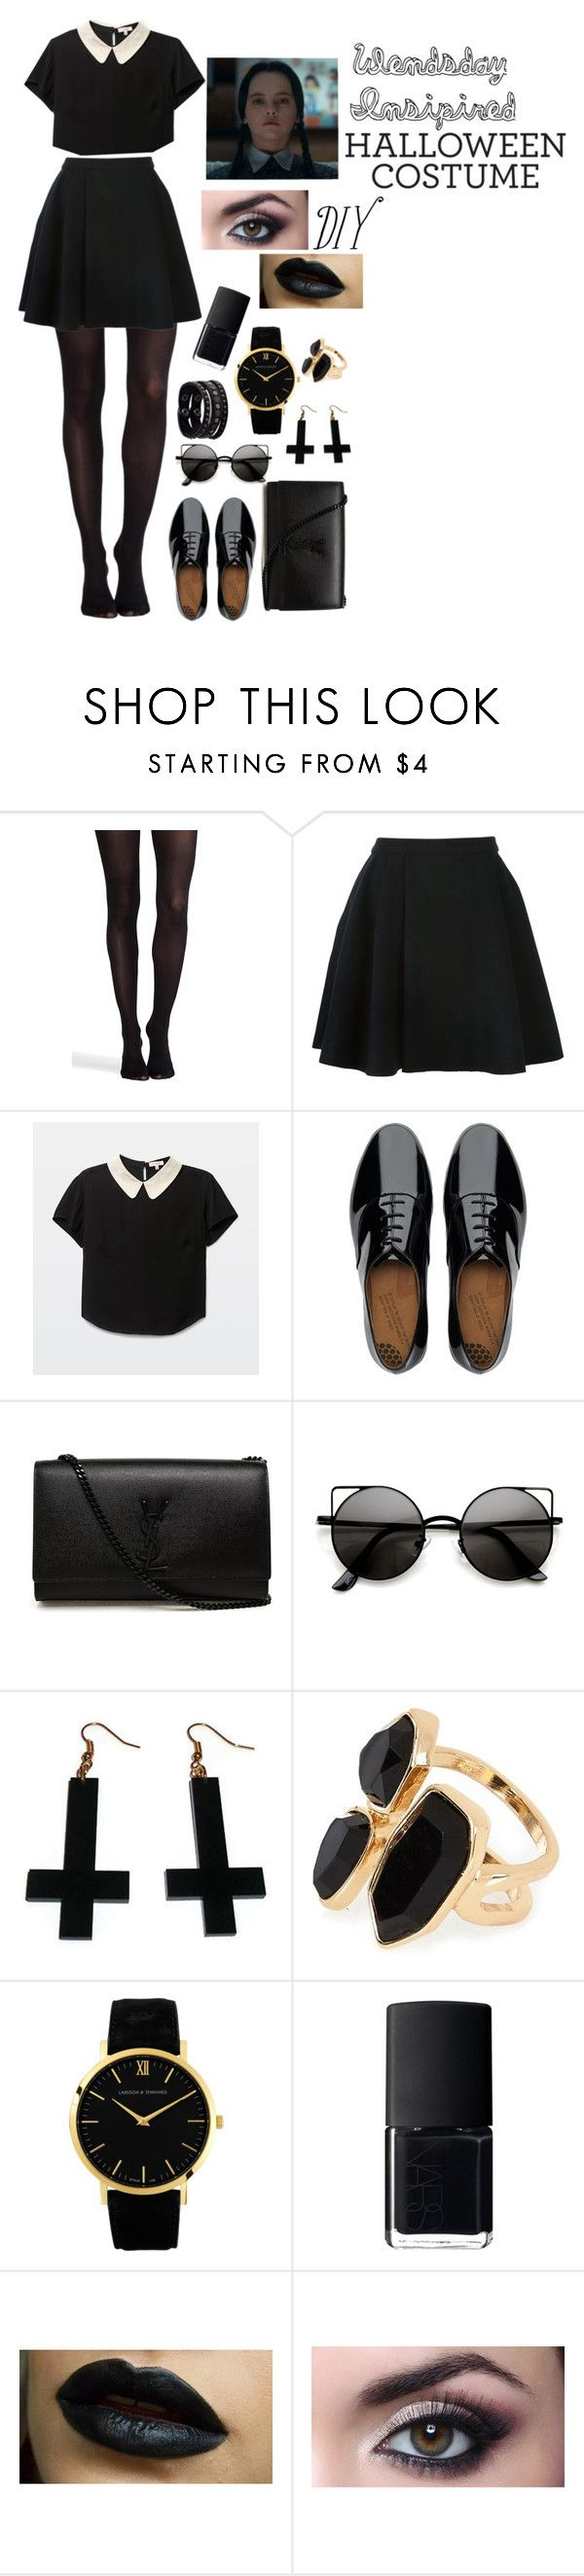 """Wednesday Addams Outfit/Costume"" by omfvalerie ❤ liked on Polyvore featuring SPANX, Avelon, FitFlop, Yves Saint Laurent, Chicnova Fashion, River Island, Larsson & Jennings, NARS Cosmetics and Replay"